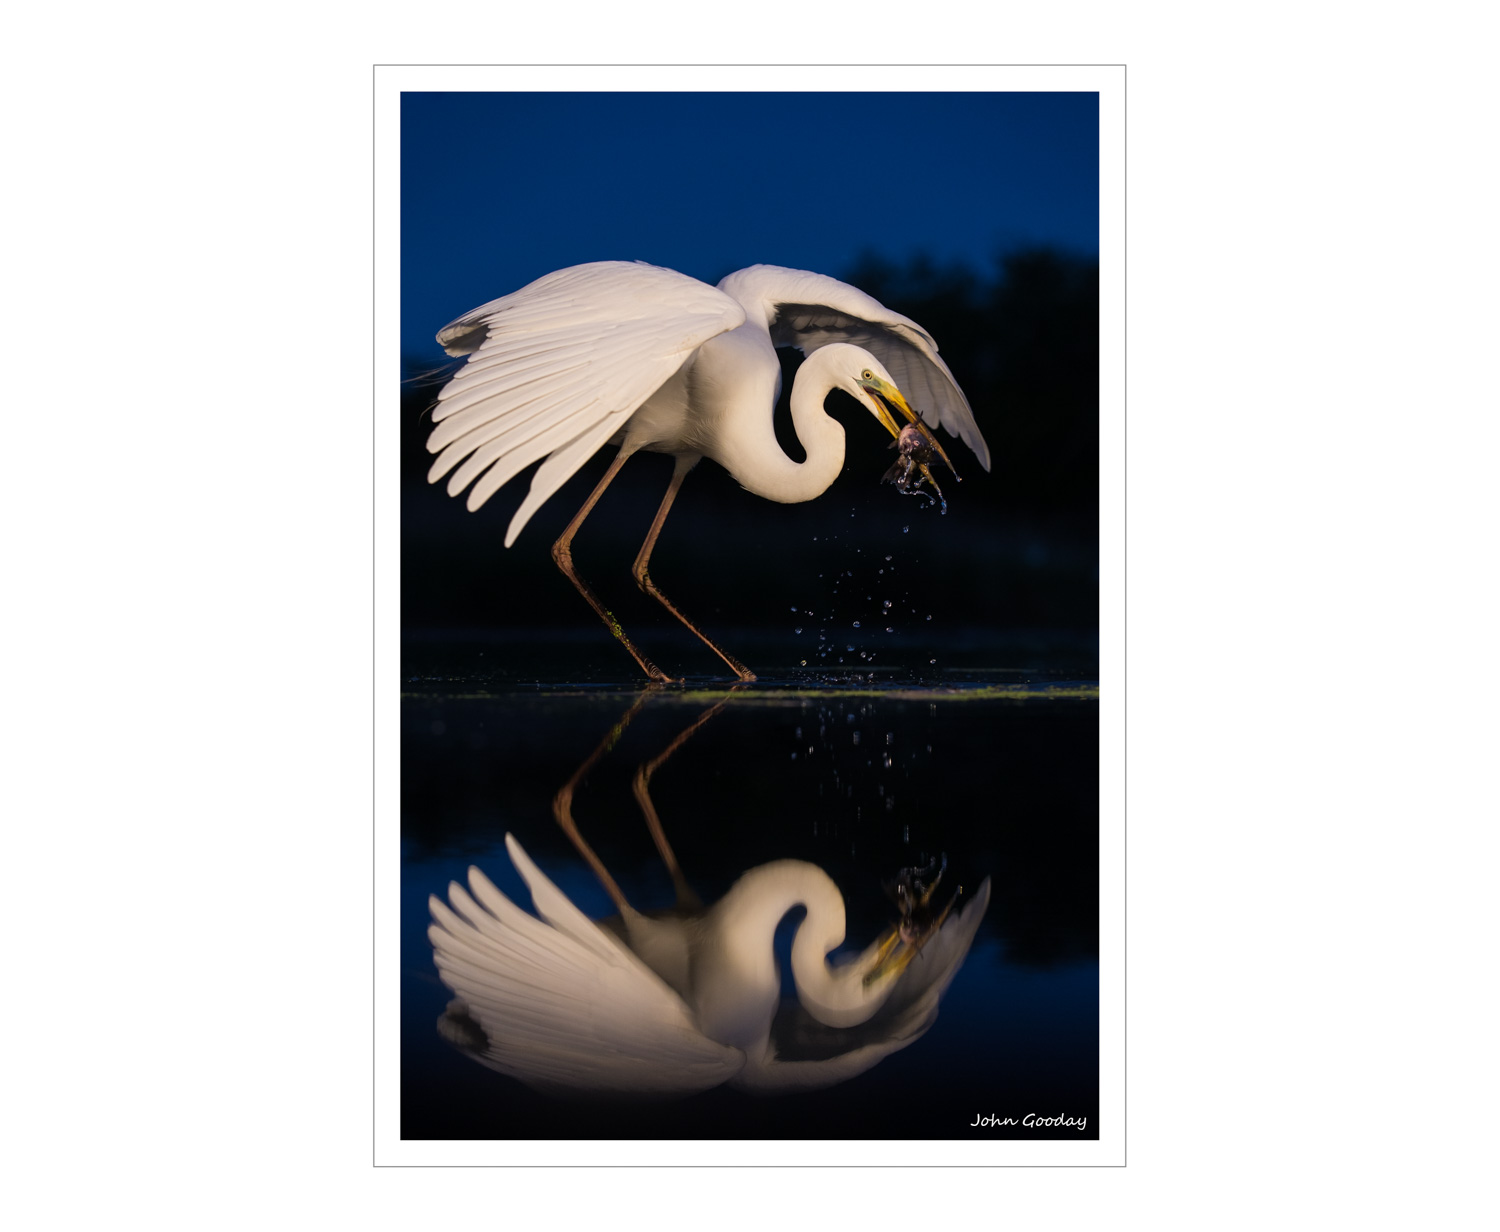 (Image: Great Egret fishing in pre-dawn light. Canon EOS 1DX, EF70-200mm f/2.8L IS II, 1/1000 sec @ f/4, ISO 1250, tripod, hide, halogen lights)